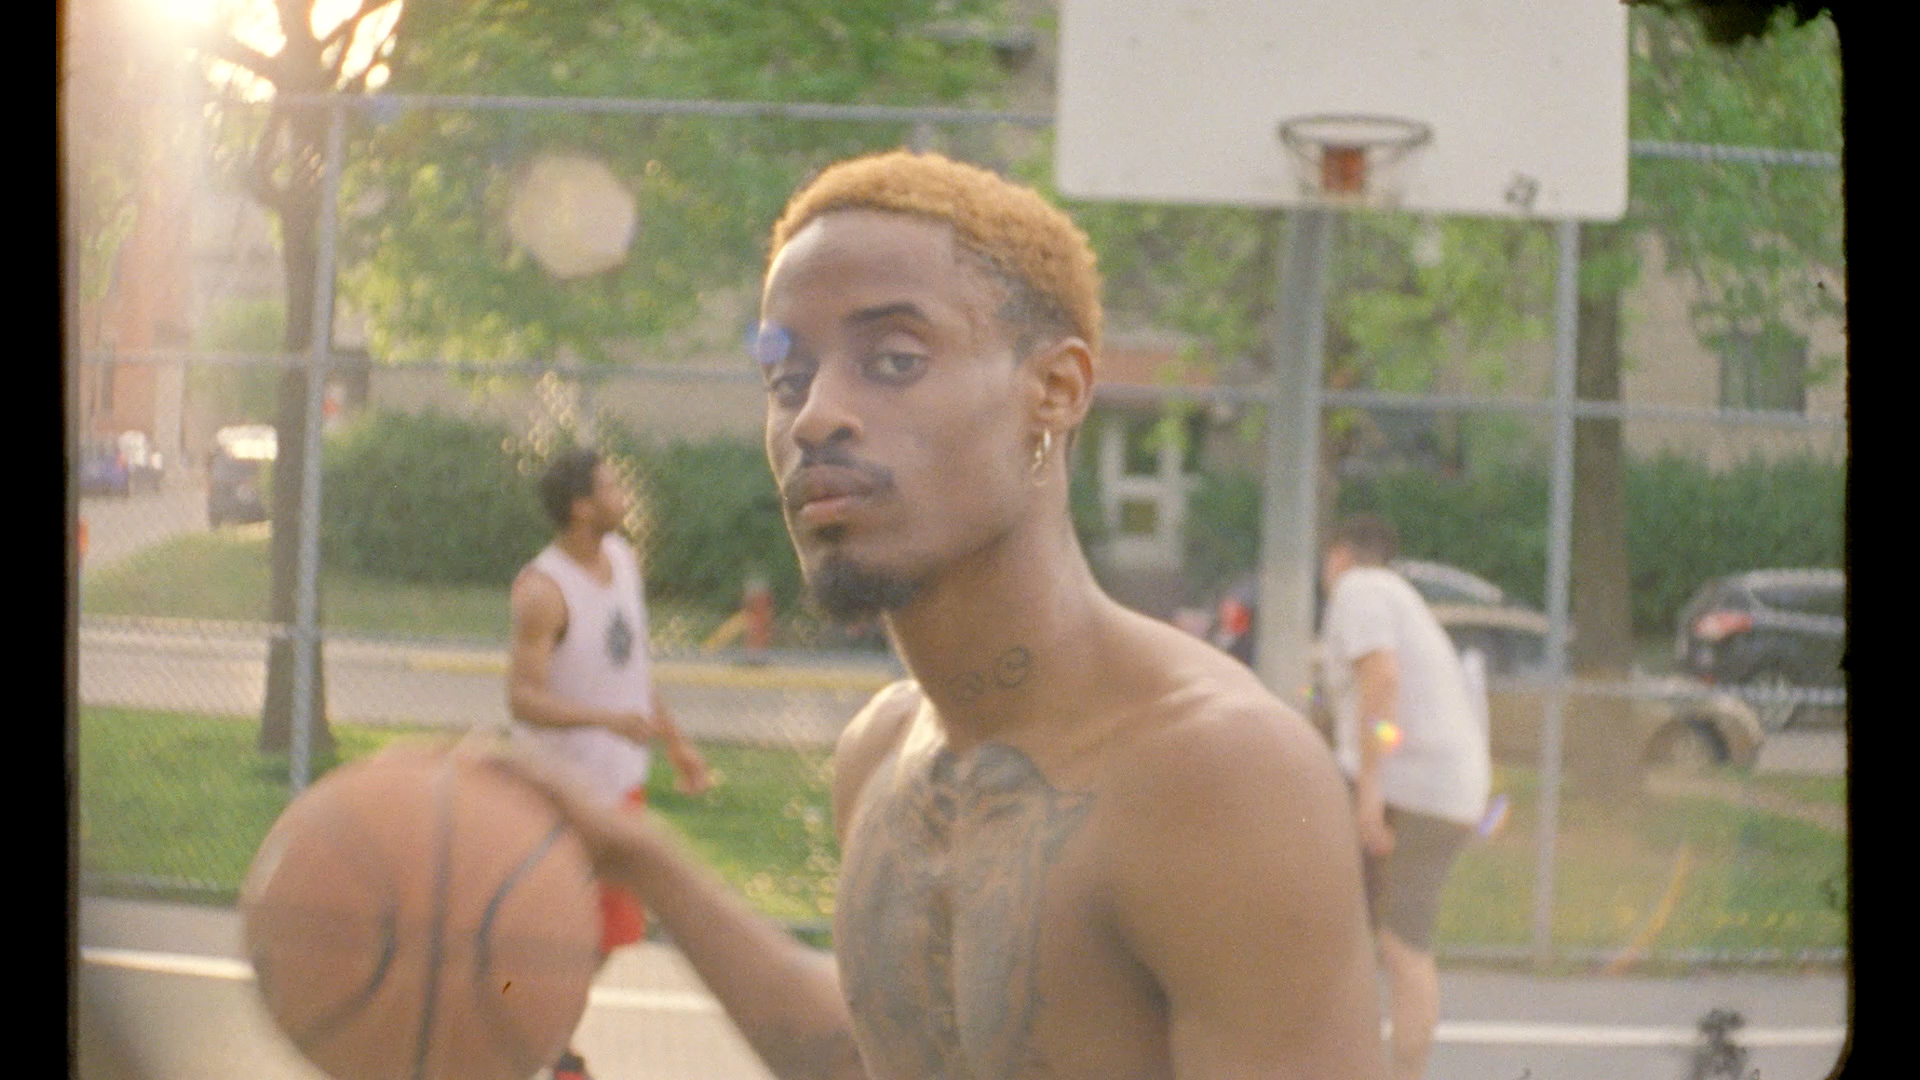 Nate Husser rap singer playing basketball in video La Beatmakerie filmed by Les Gamins